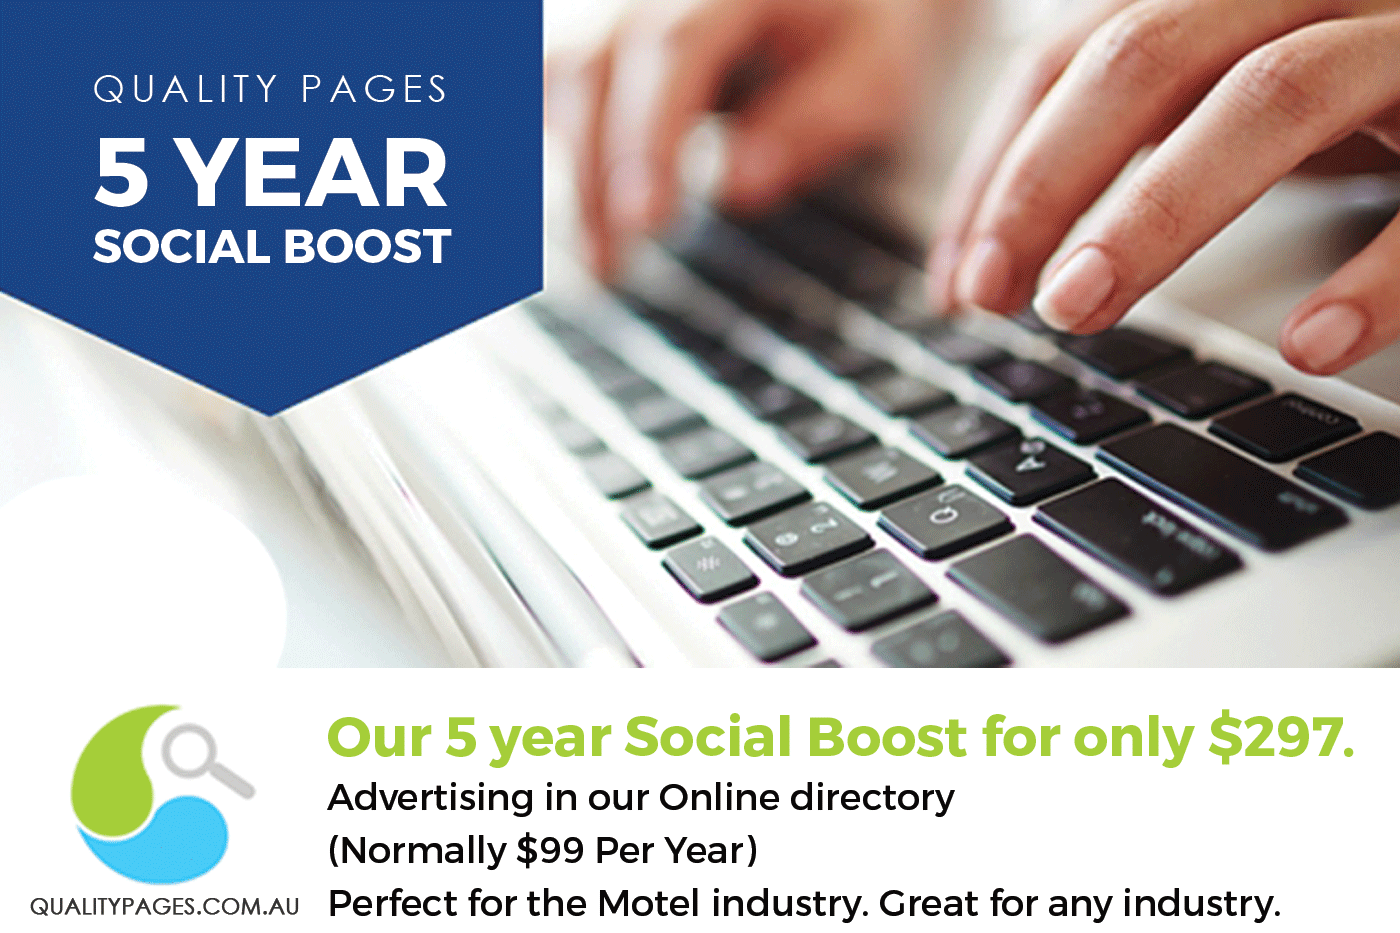 Quality Pages 5 year social boost